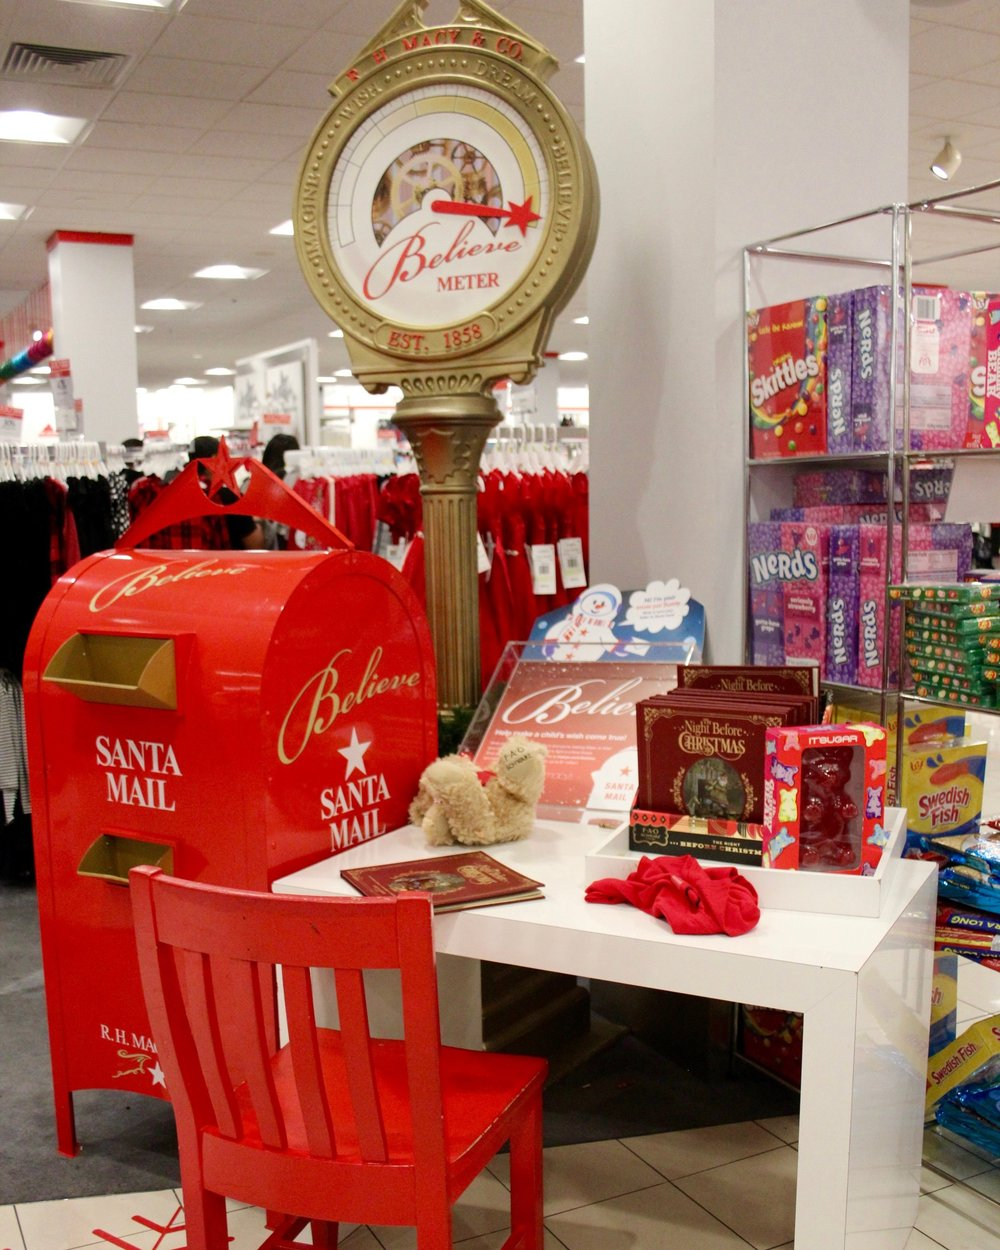 Macy's Santa Claus's Mailbox partnered with Make-A-Wish encourages children to write a letter to the North Pole. Photo by Paris Barraza